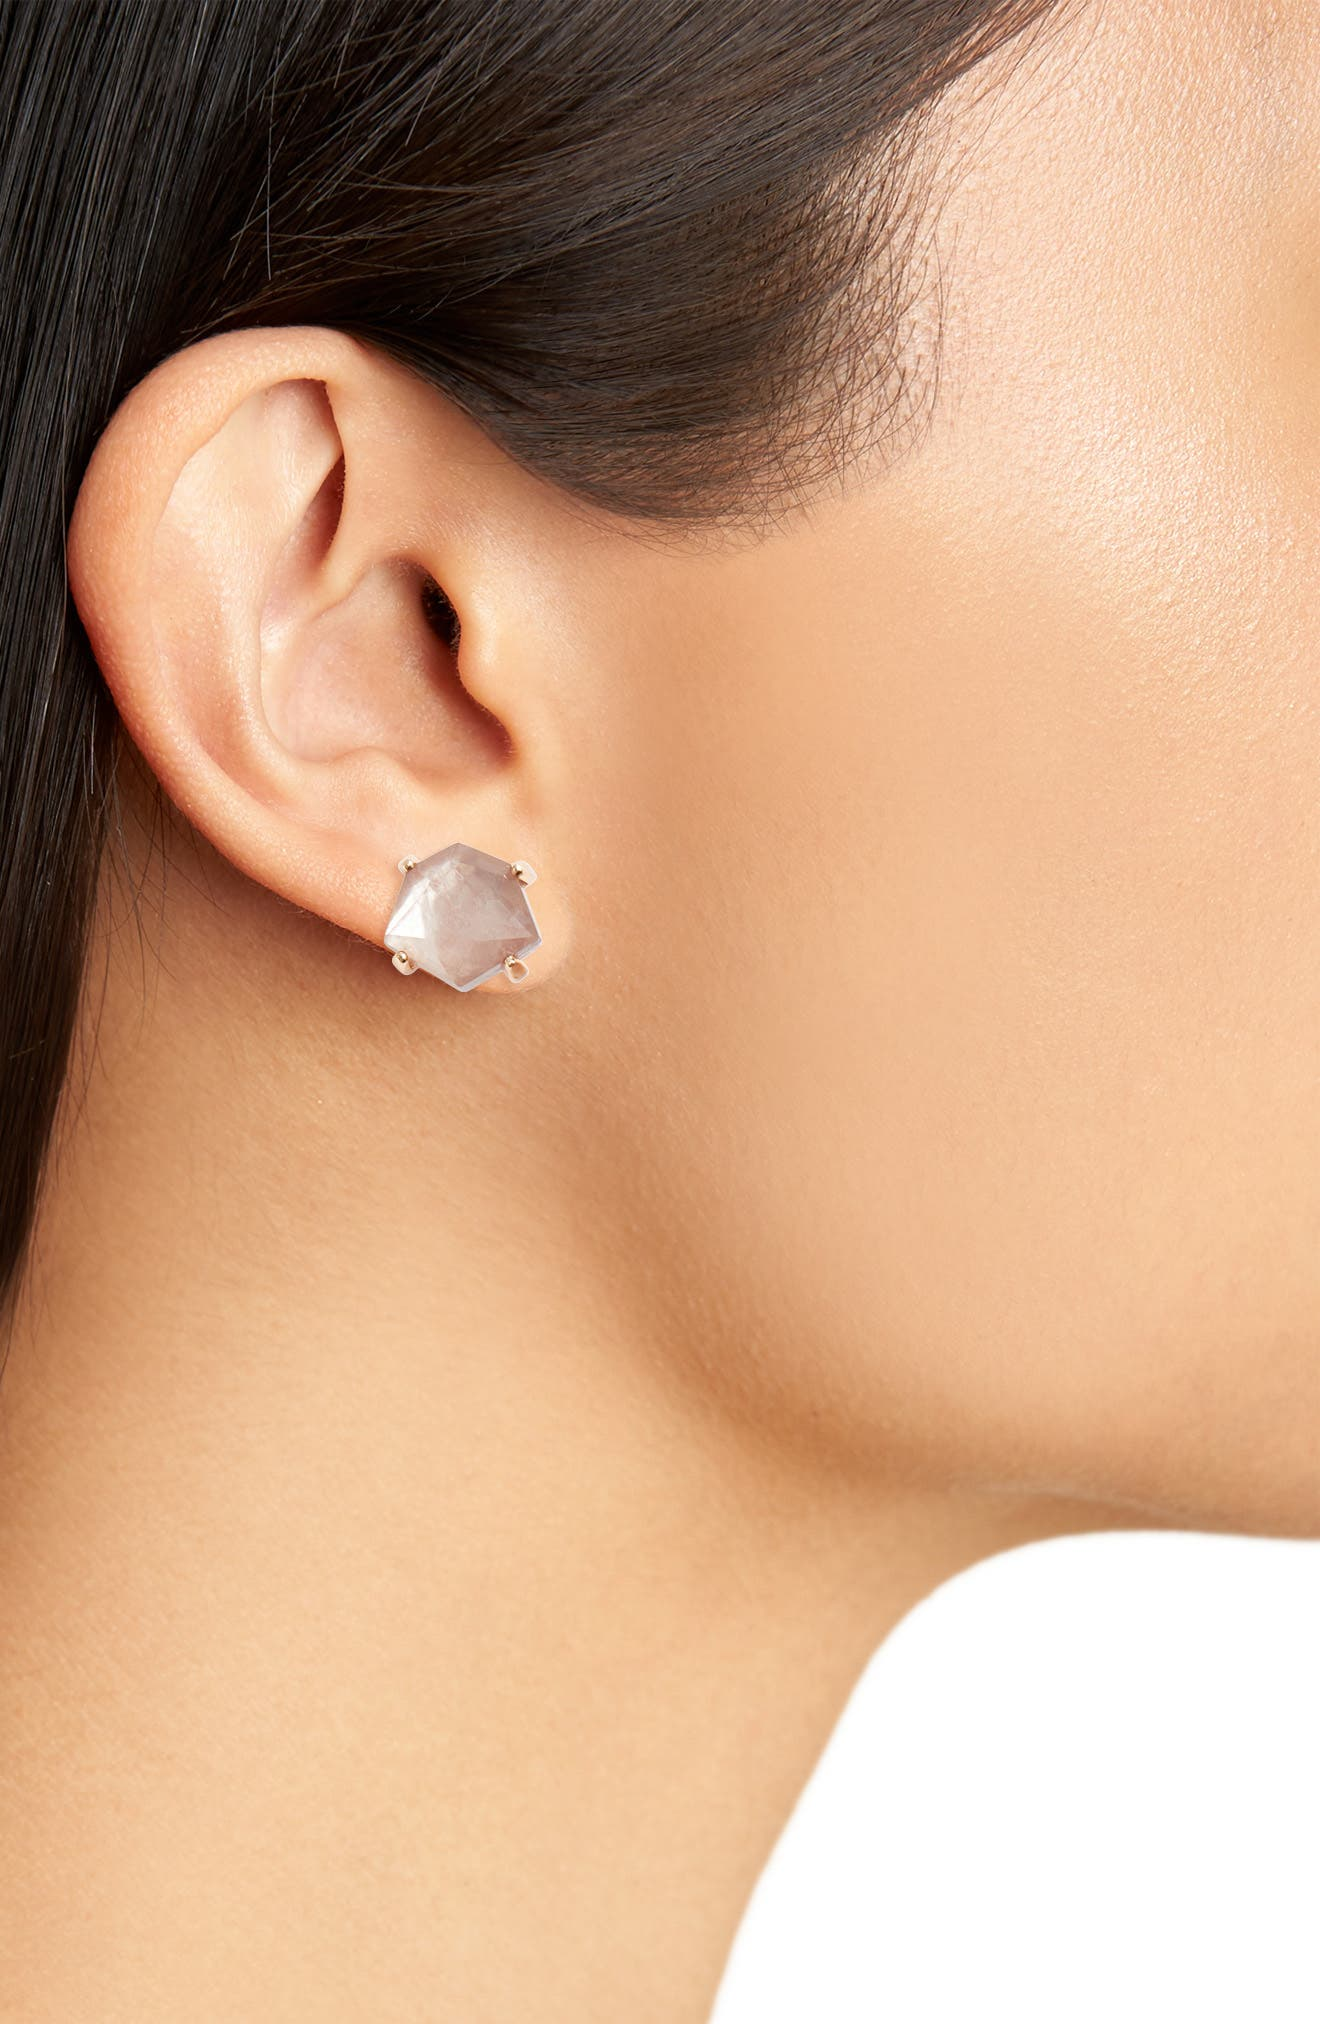 Ellms Stud Earrings,                             Alternate thumbnail 2, color,                             200